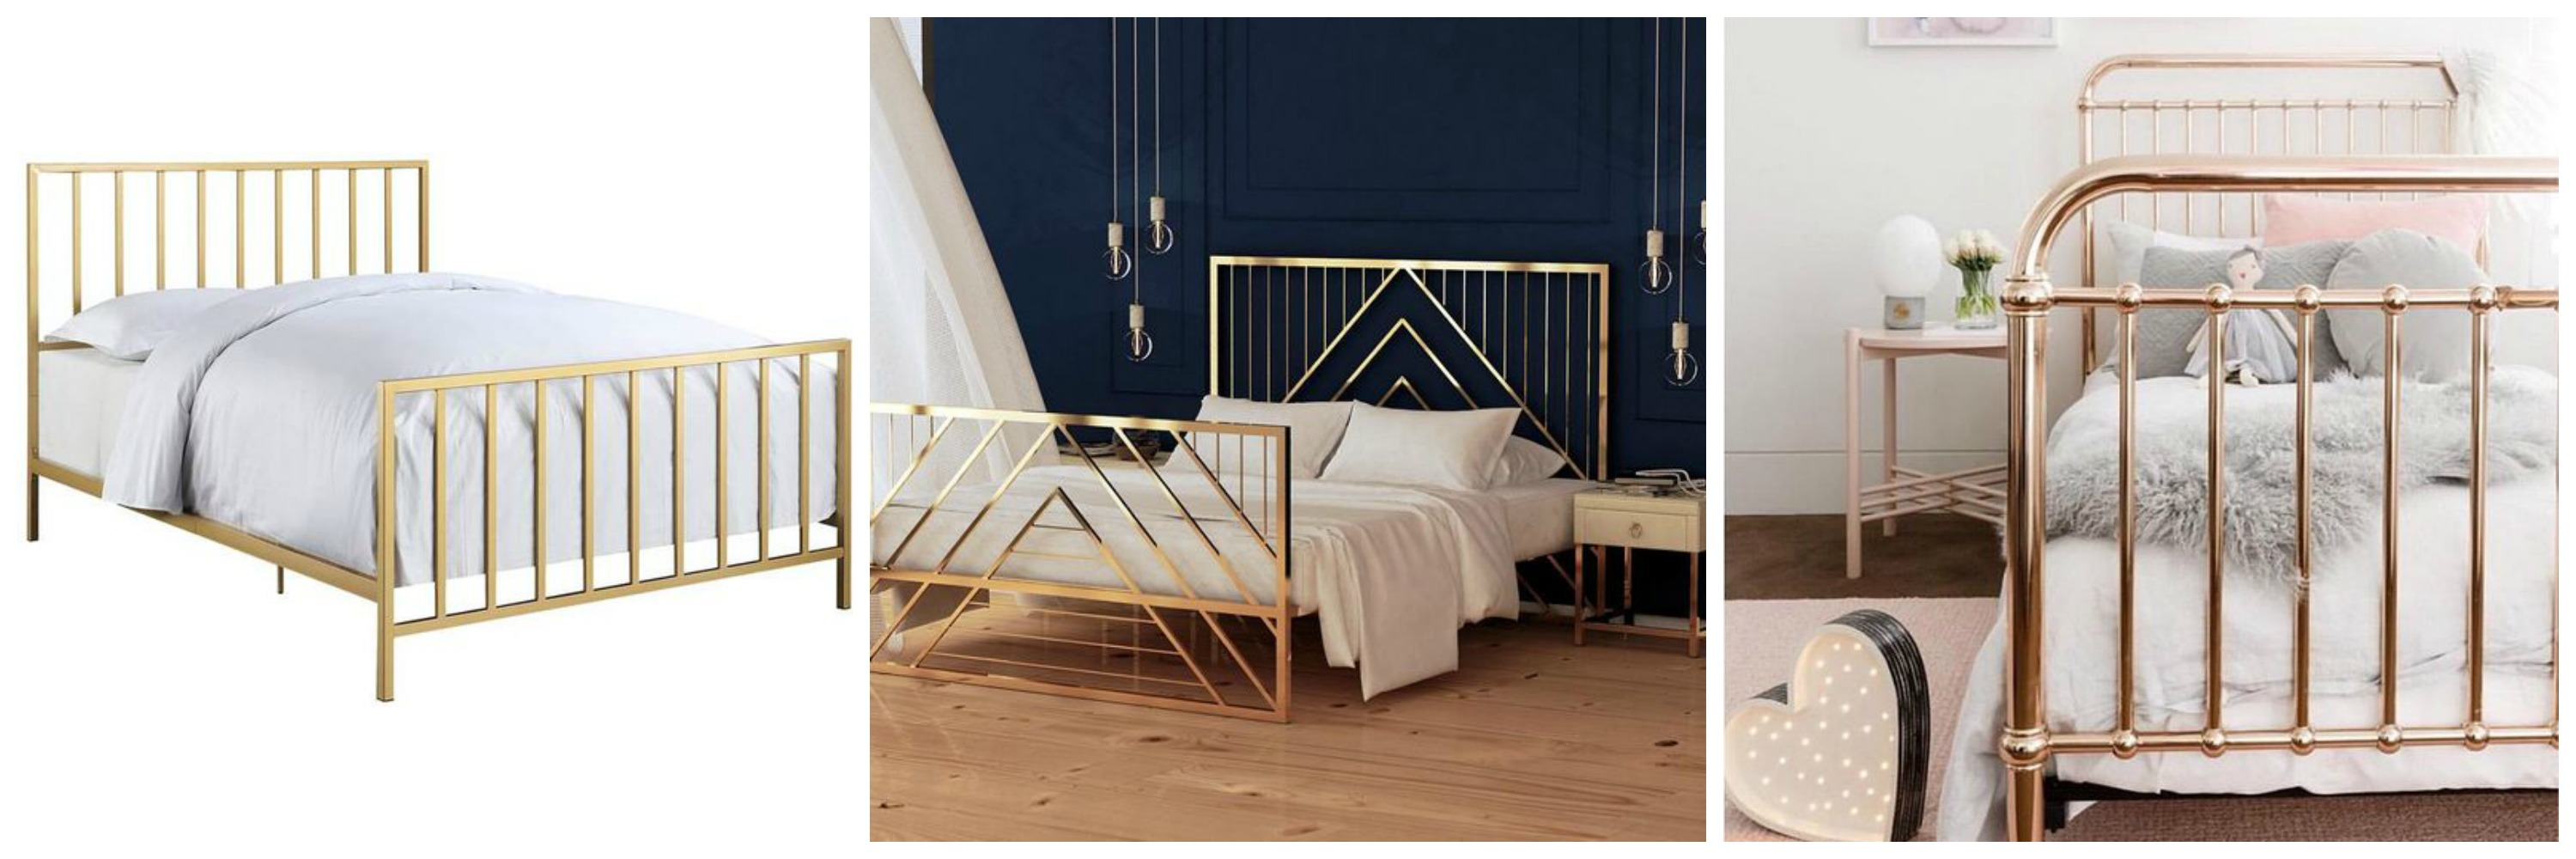 gold bed frame collage